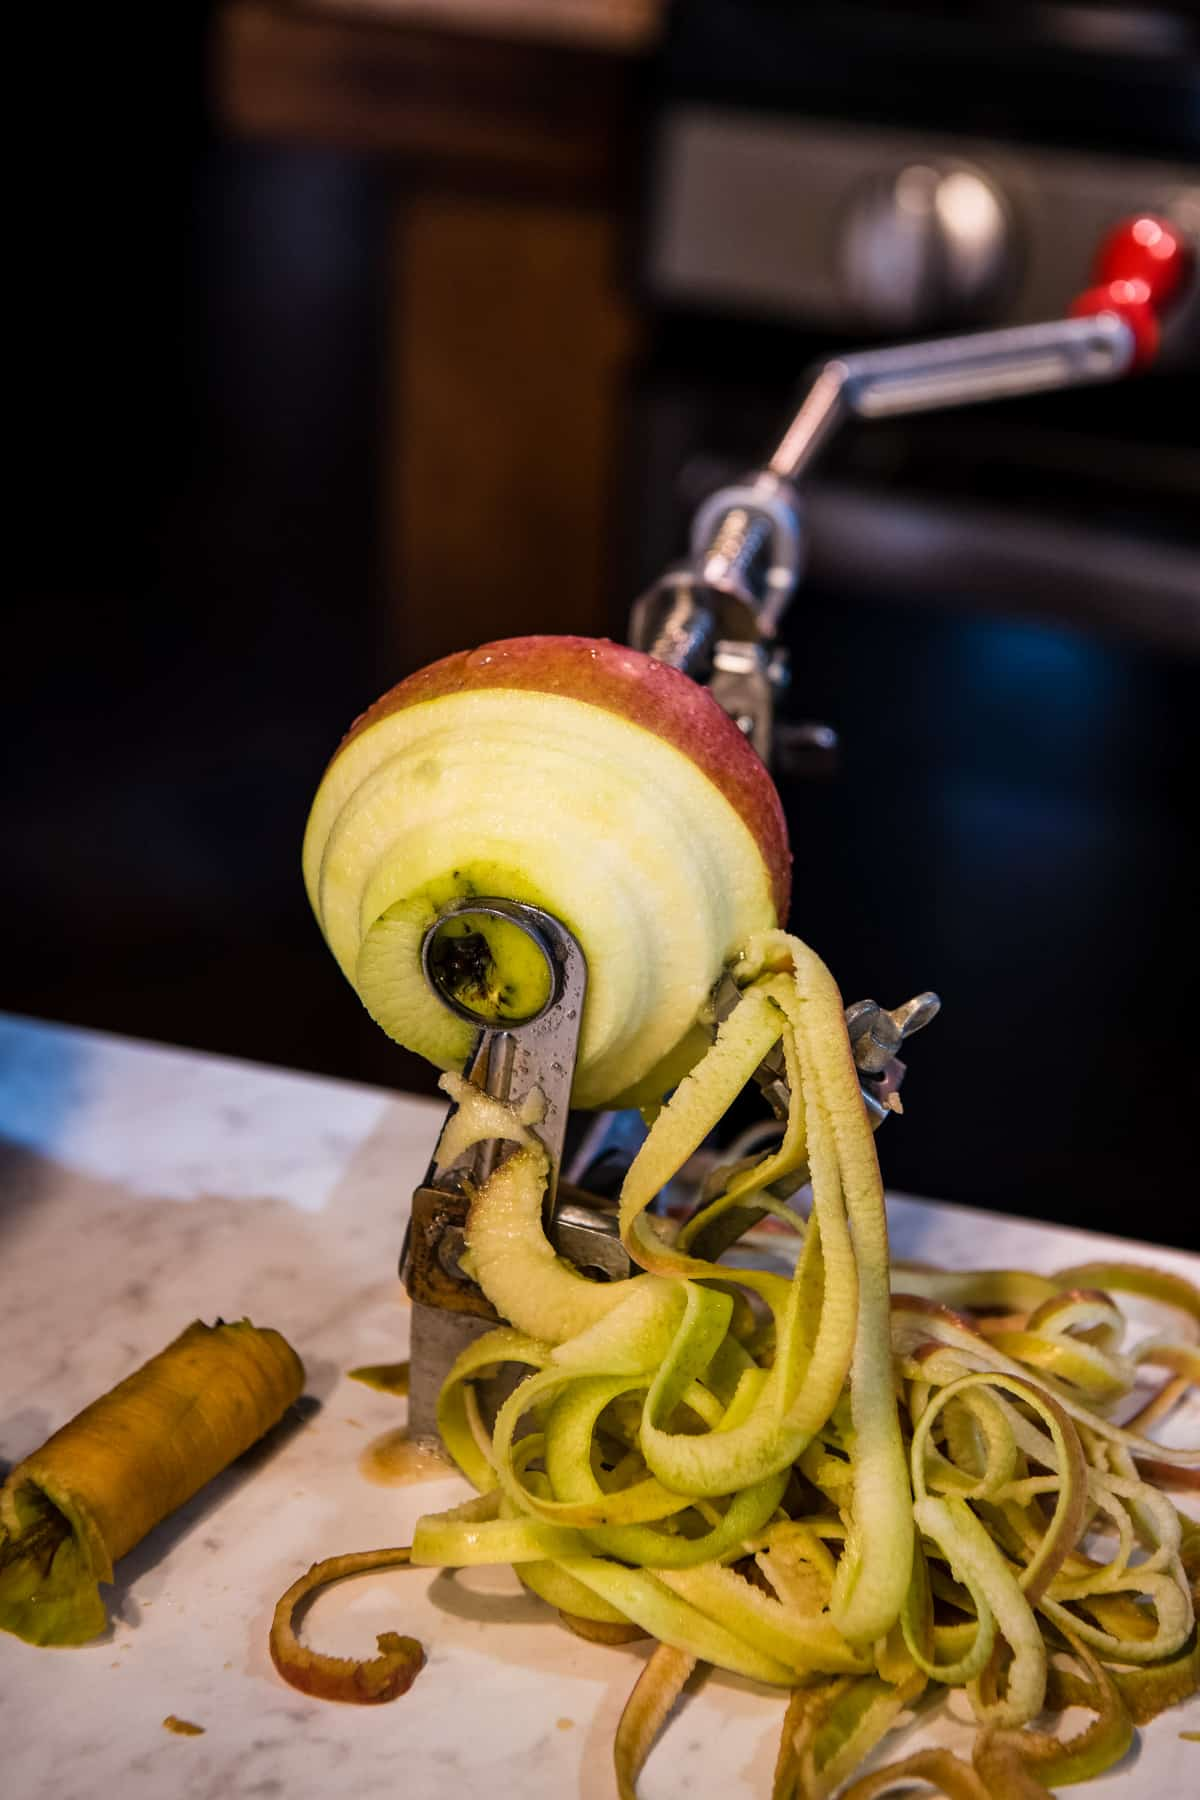 Johnny apple peeler for peeling, coring, and slicing apples on white countertop